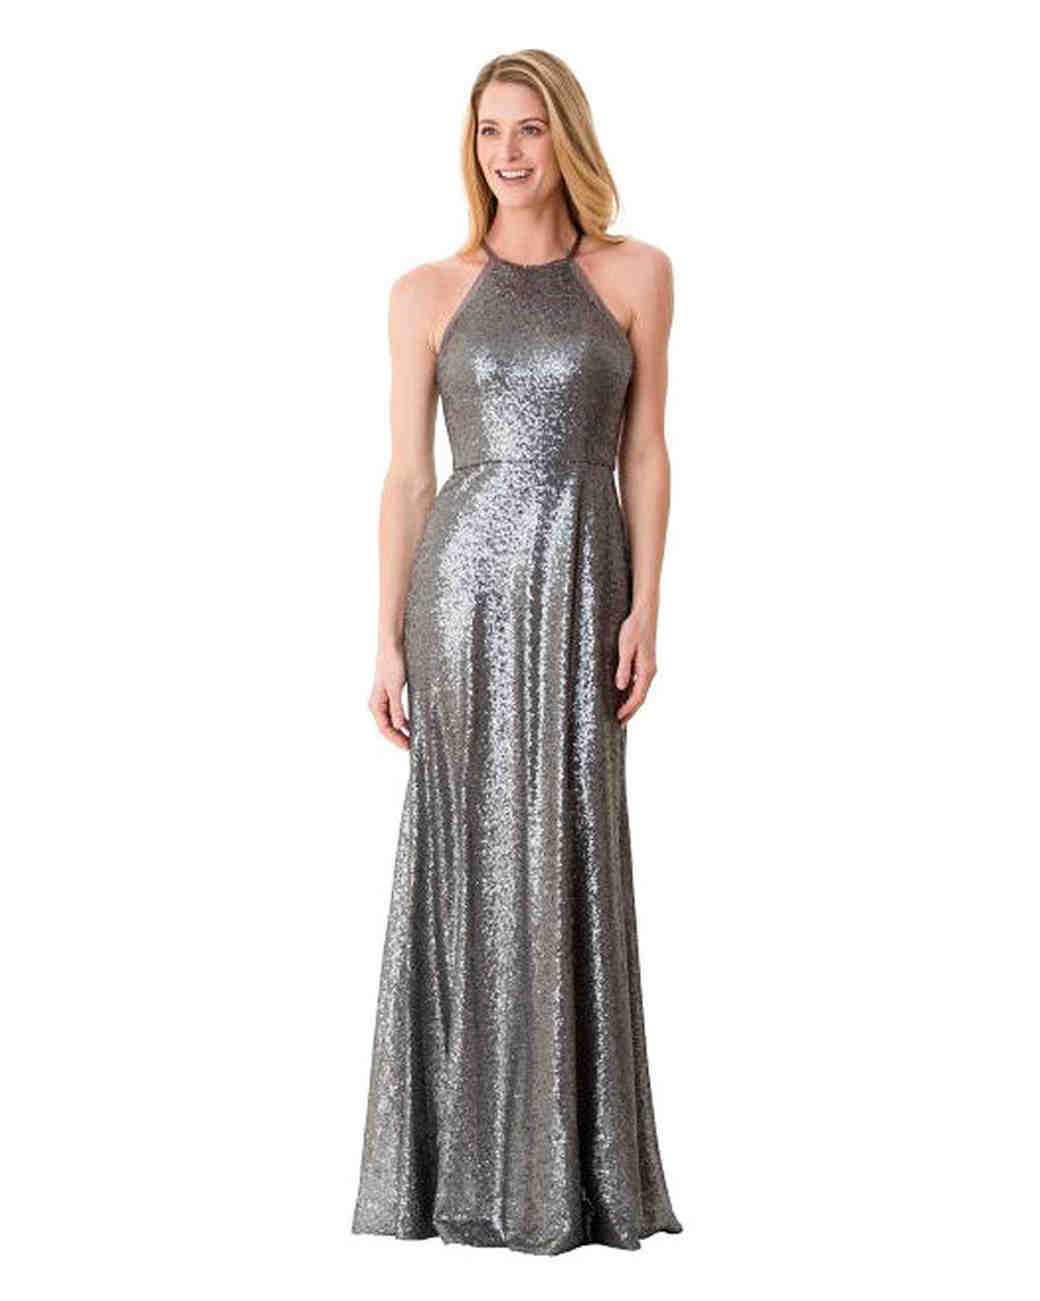 e749c048d667 Metallic Bridesmaid Dresses That You Can Wear Over and Over Again | Martha  Stewart Weddings